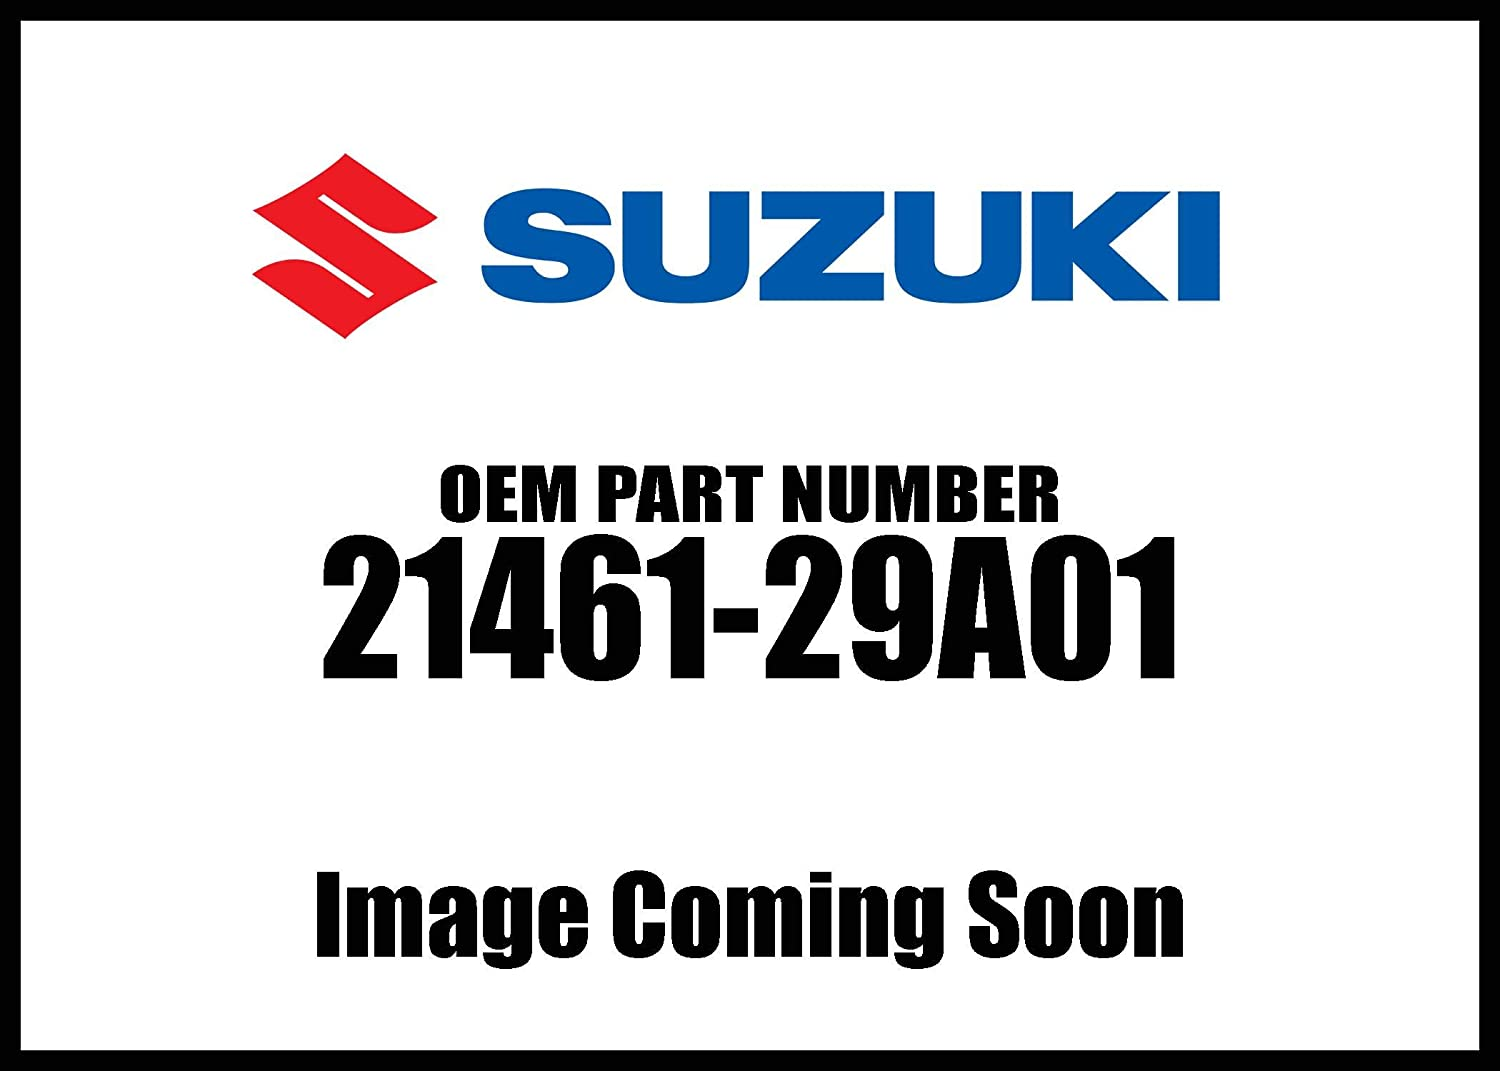 Suzuki 2005-2009 Quadsport Z90 Disk Clutch Pre 21461-29A01 New Oem